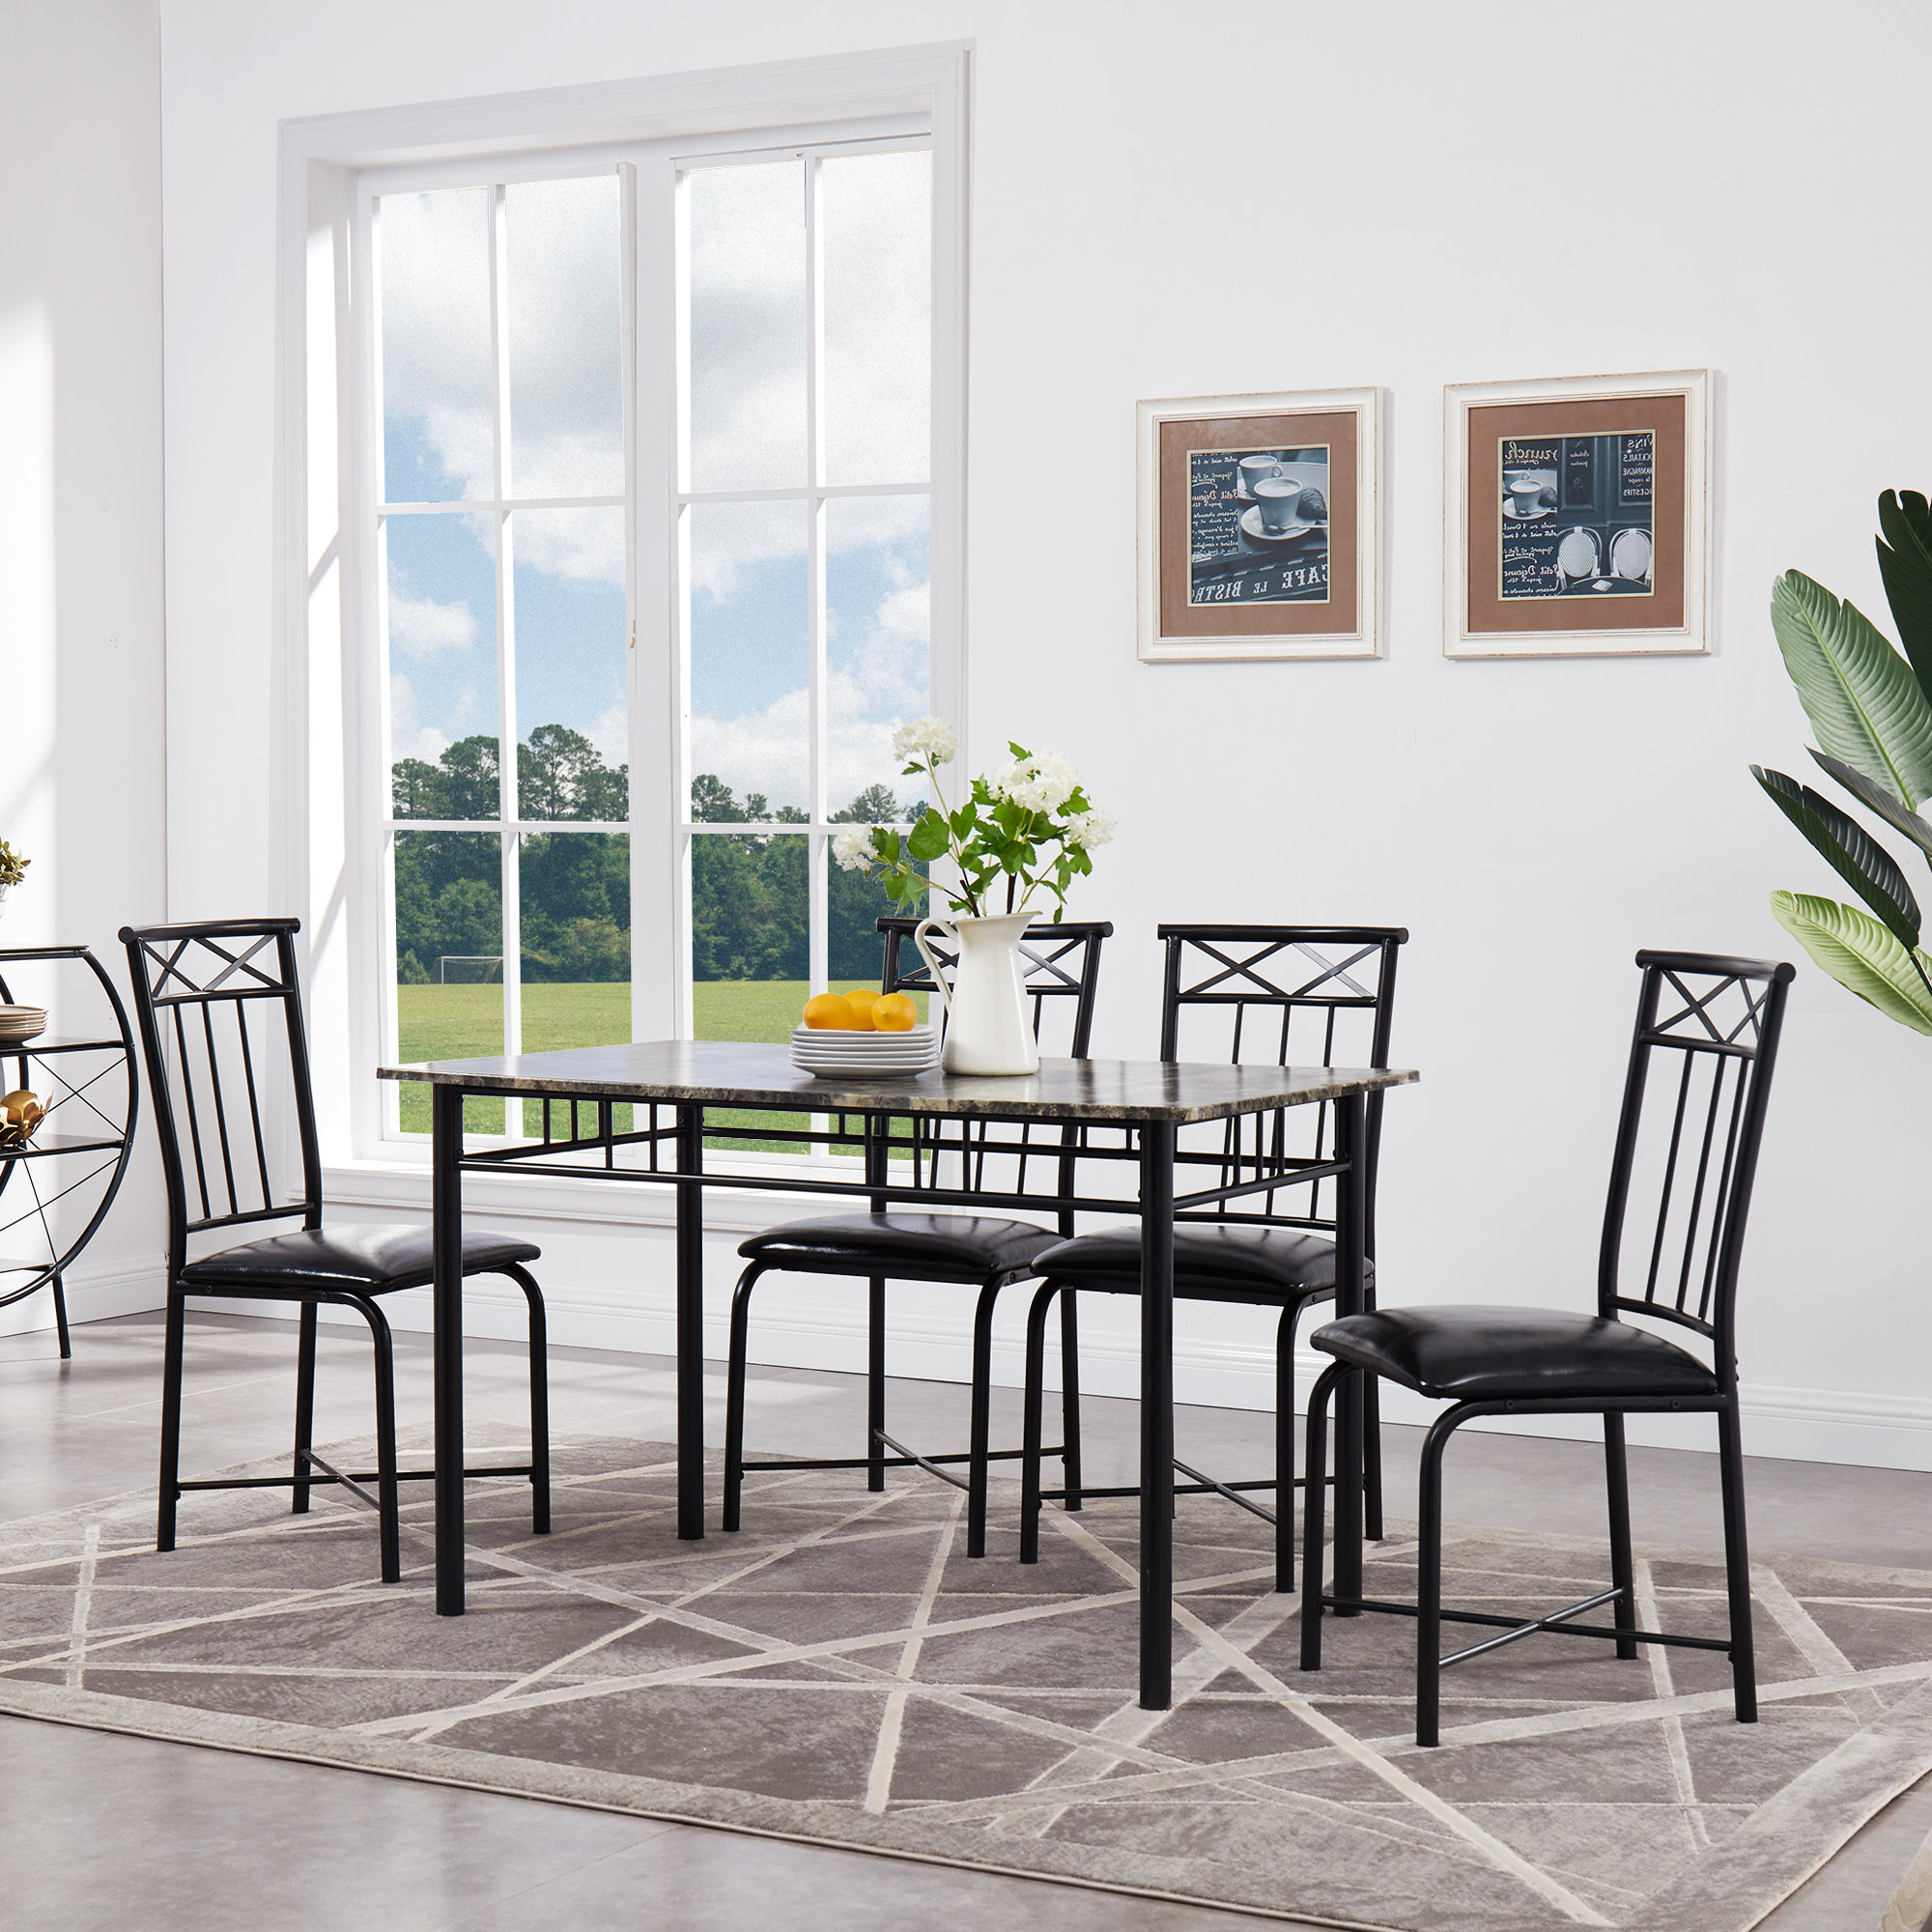 Wayfair Within Current Taulbee 5 Piece Dining Sets (View 4 of 25)